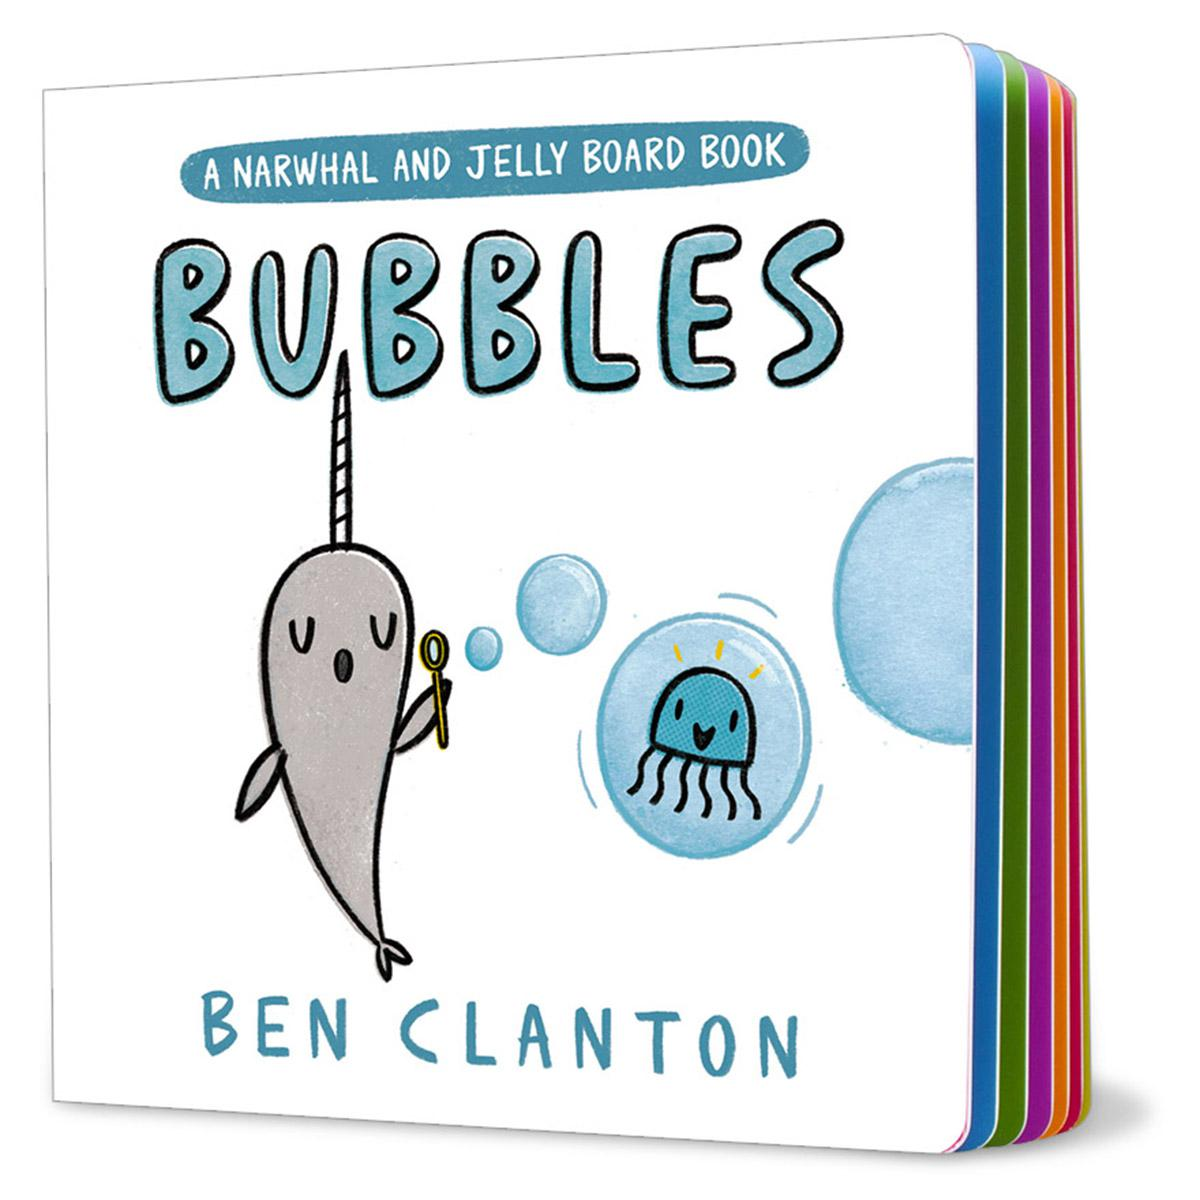 Bubbles: A Narwhal and Jelly Board Book